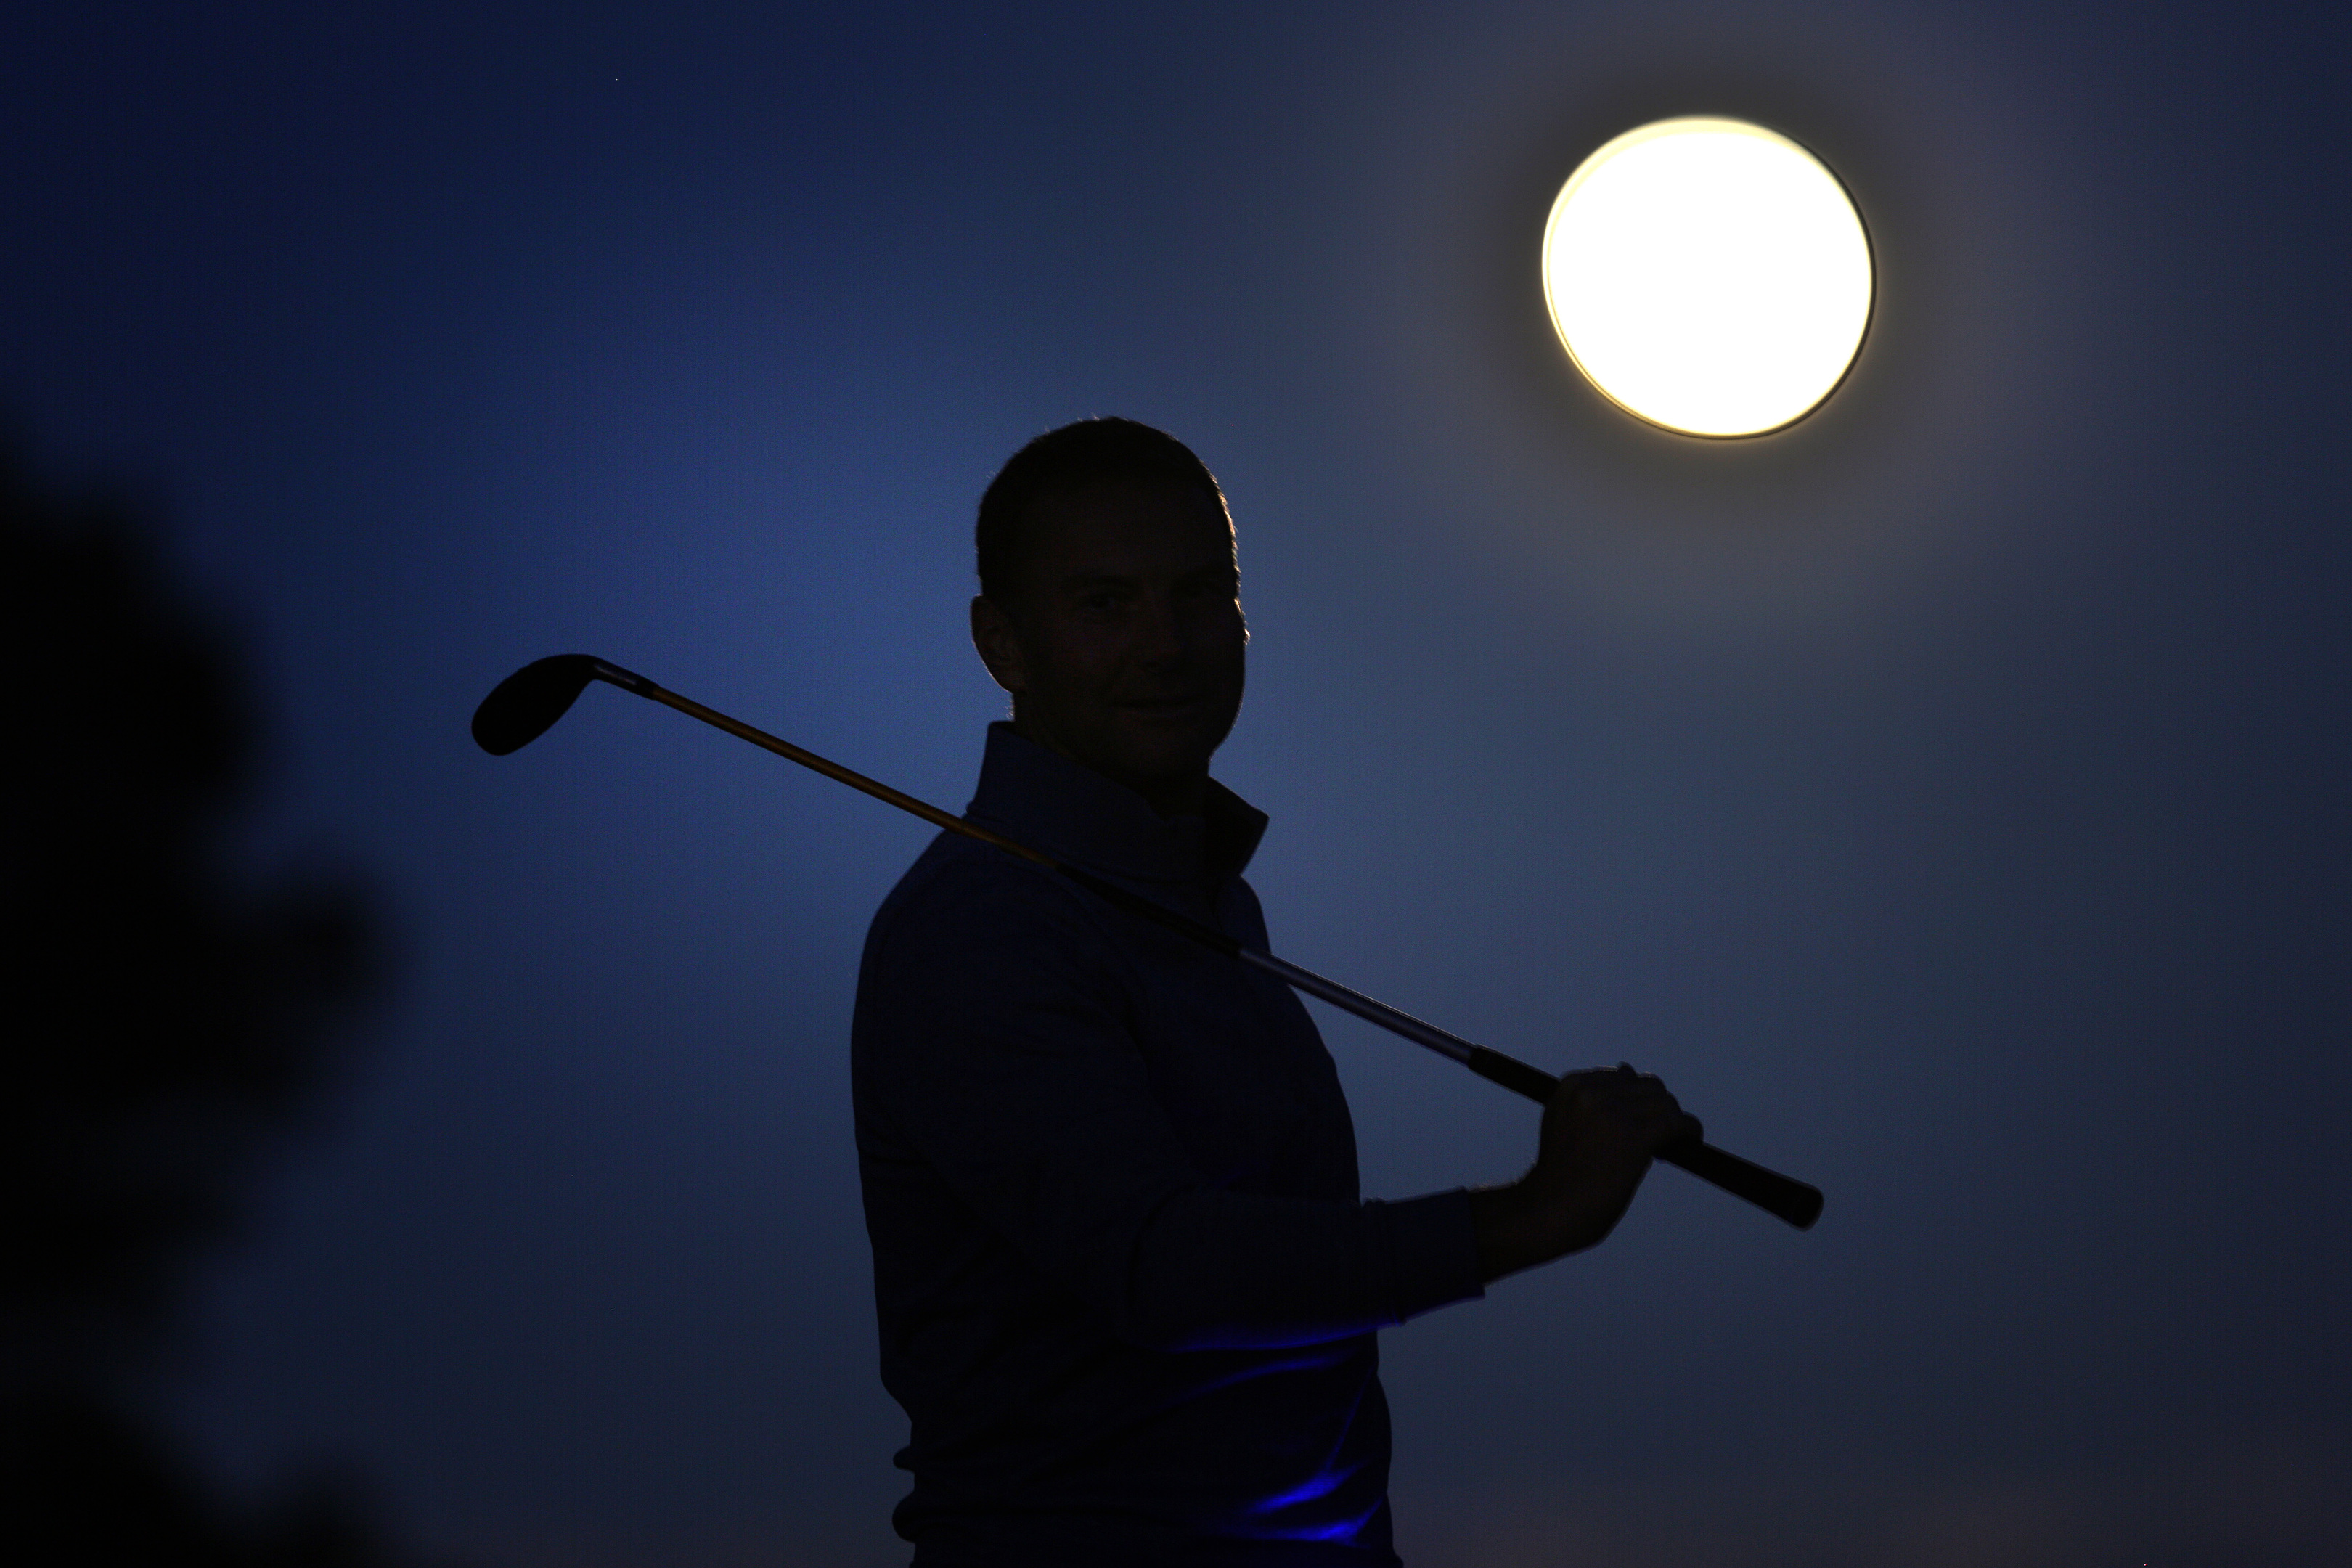 Nite Golf comes to Monifieth. Mark Blyth was one of the first to tee off.